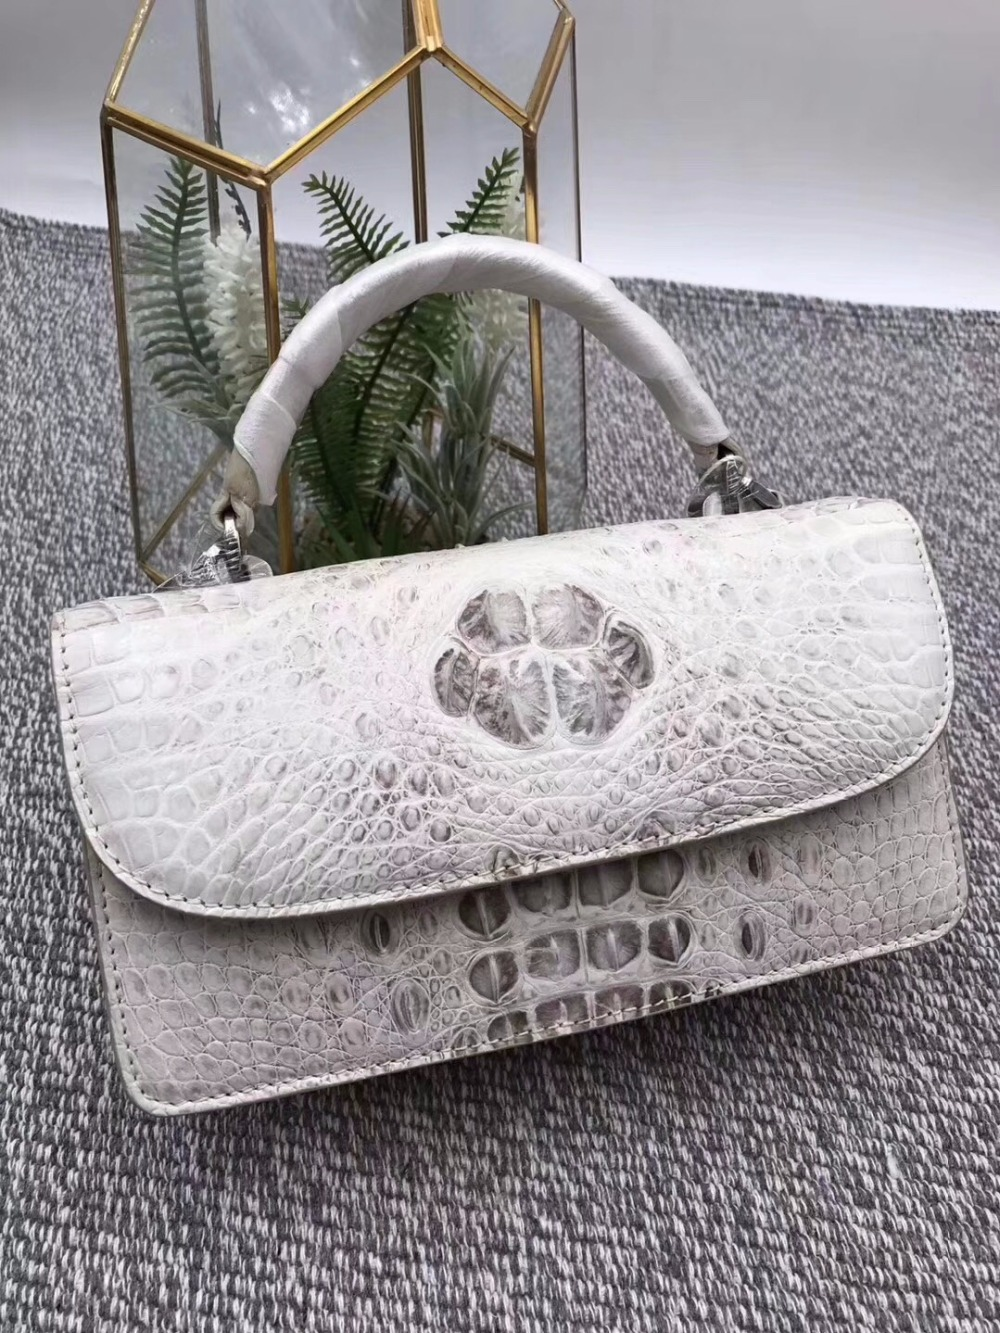 купить Fashion Designer Genuine Crocodile Leather Women's Small White Handbag Purse Alligator Skin Ladies Female Mini Flap Shoulder Bag по цене 22843.69 рублей